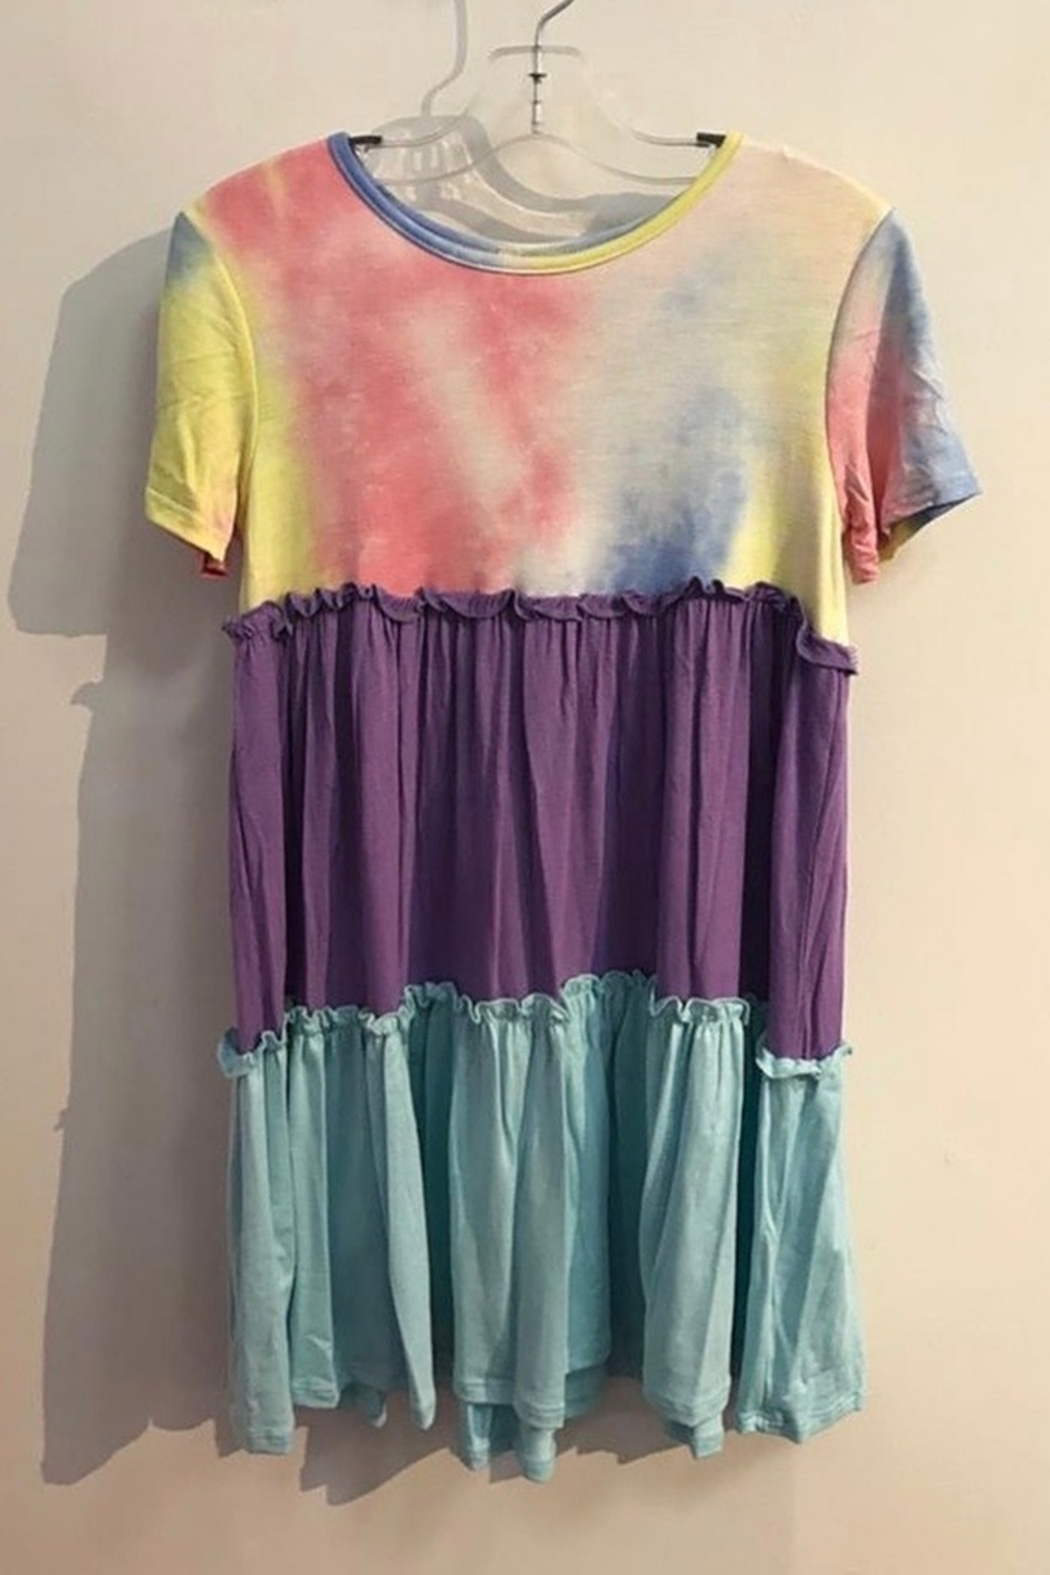 GTOG GIRLS Tie Dye and color block short sleeve dress - Main Image